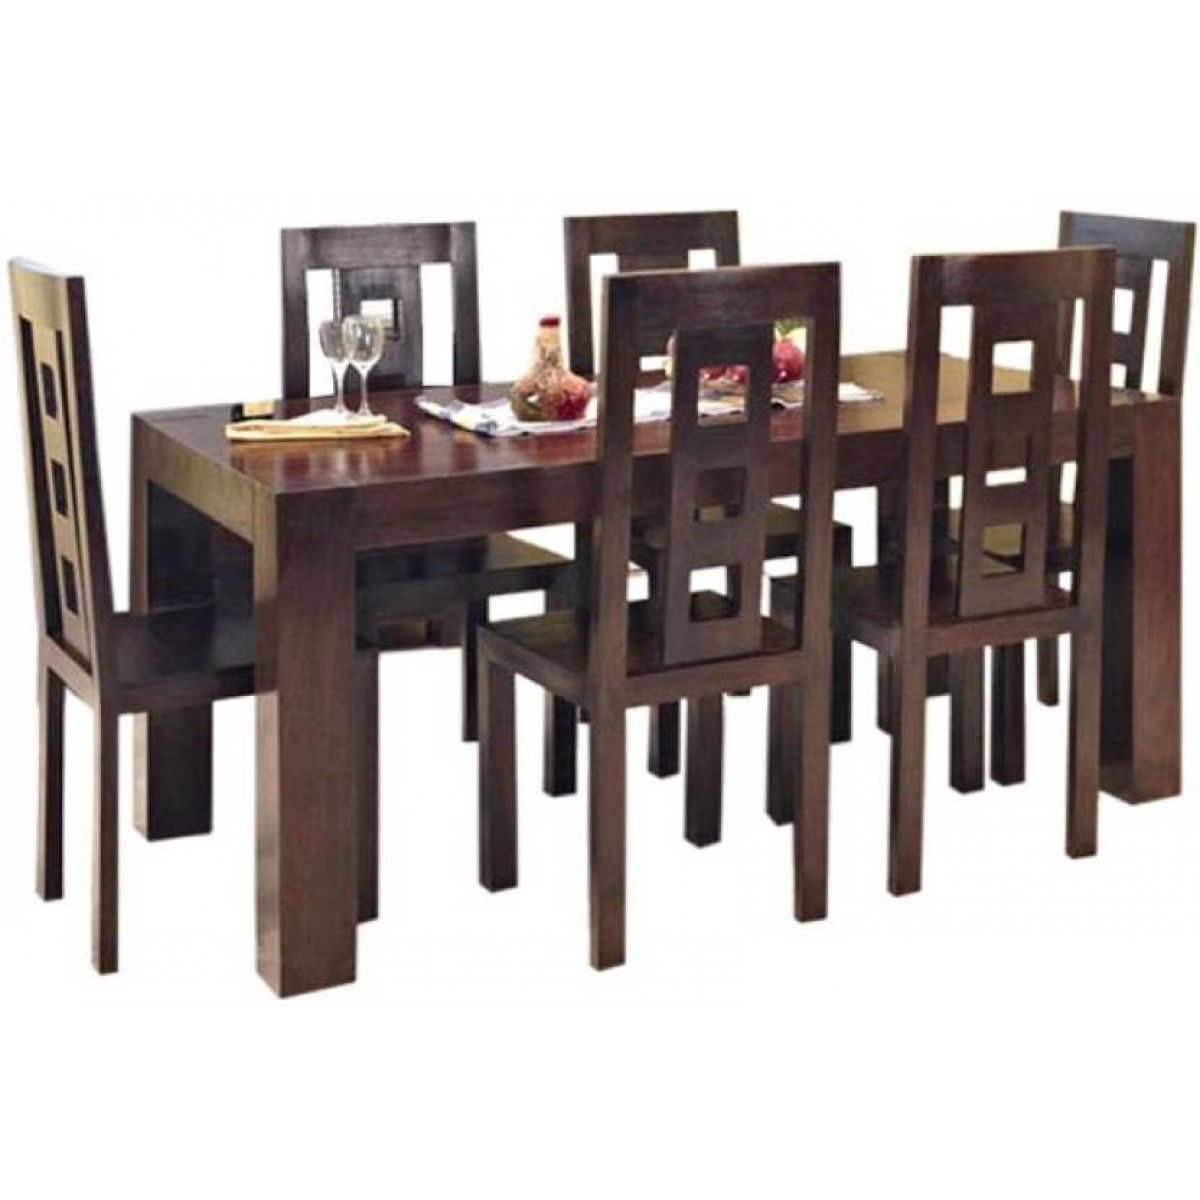 Pure Wooden Crafted Dining Table Set